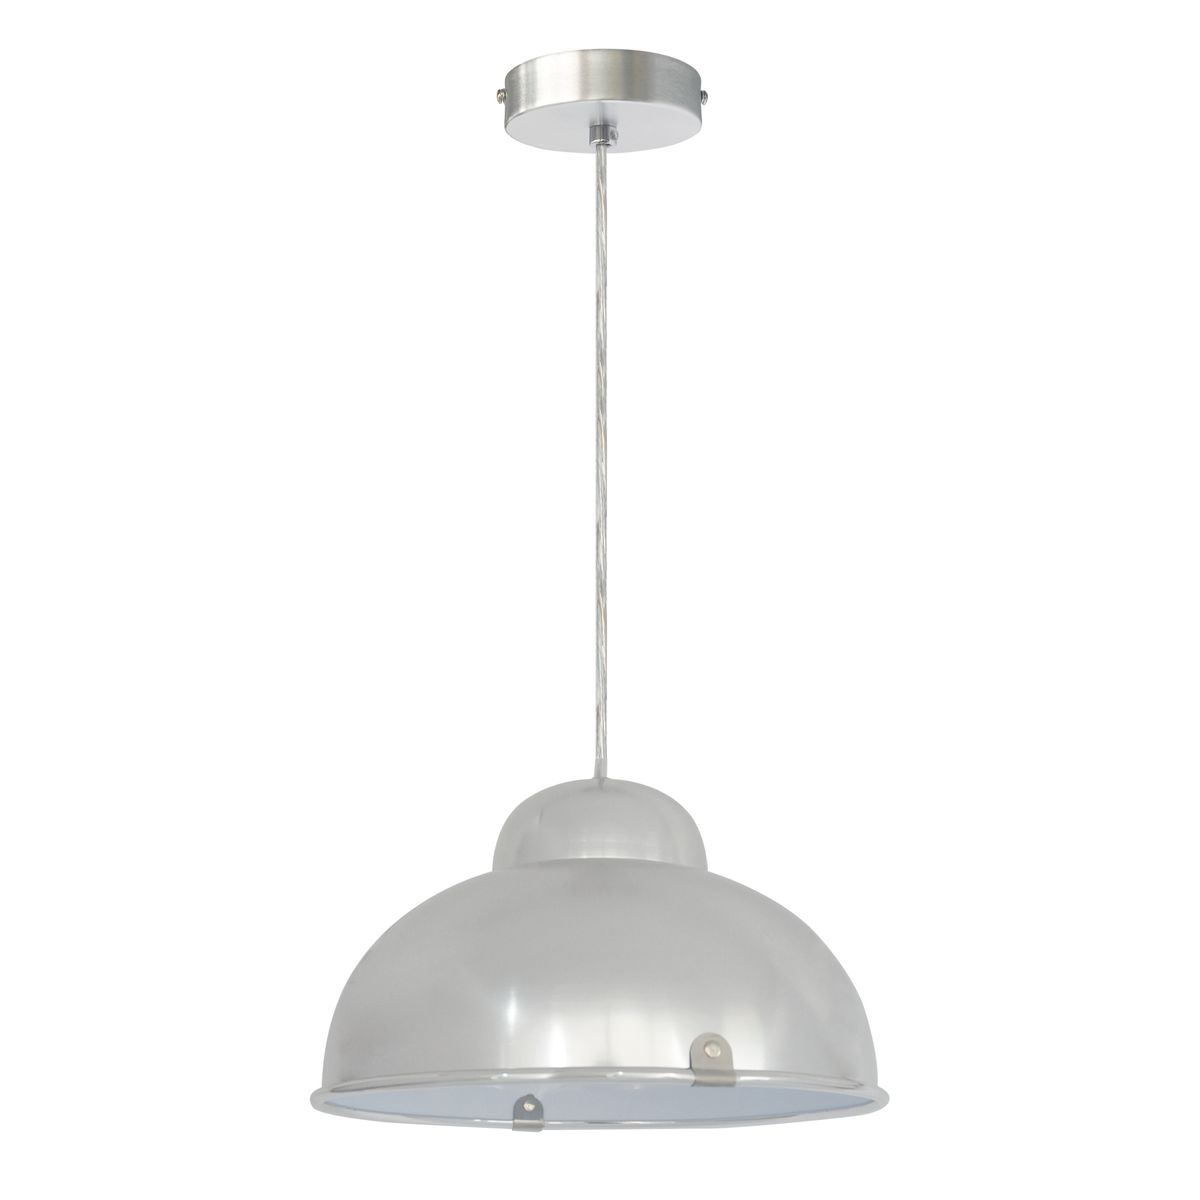 Beautiful lampadari cucina leroy merlin pictures ideas for Lampadari da cucina leroy merlin